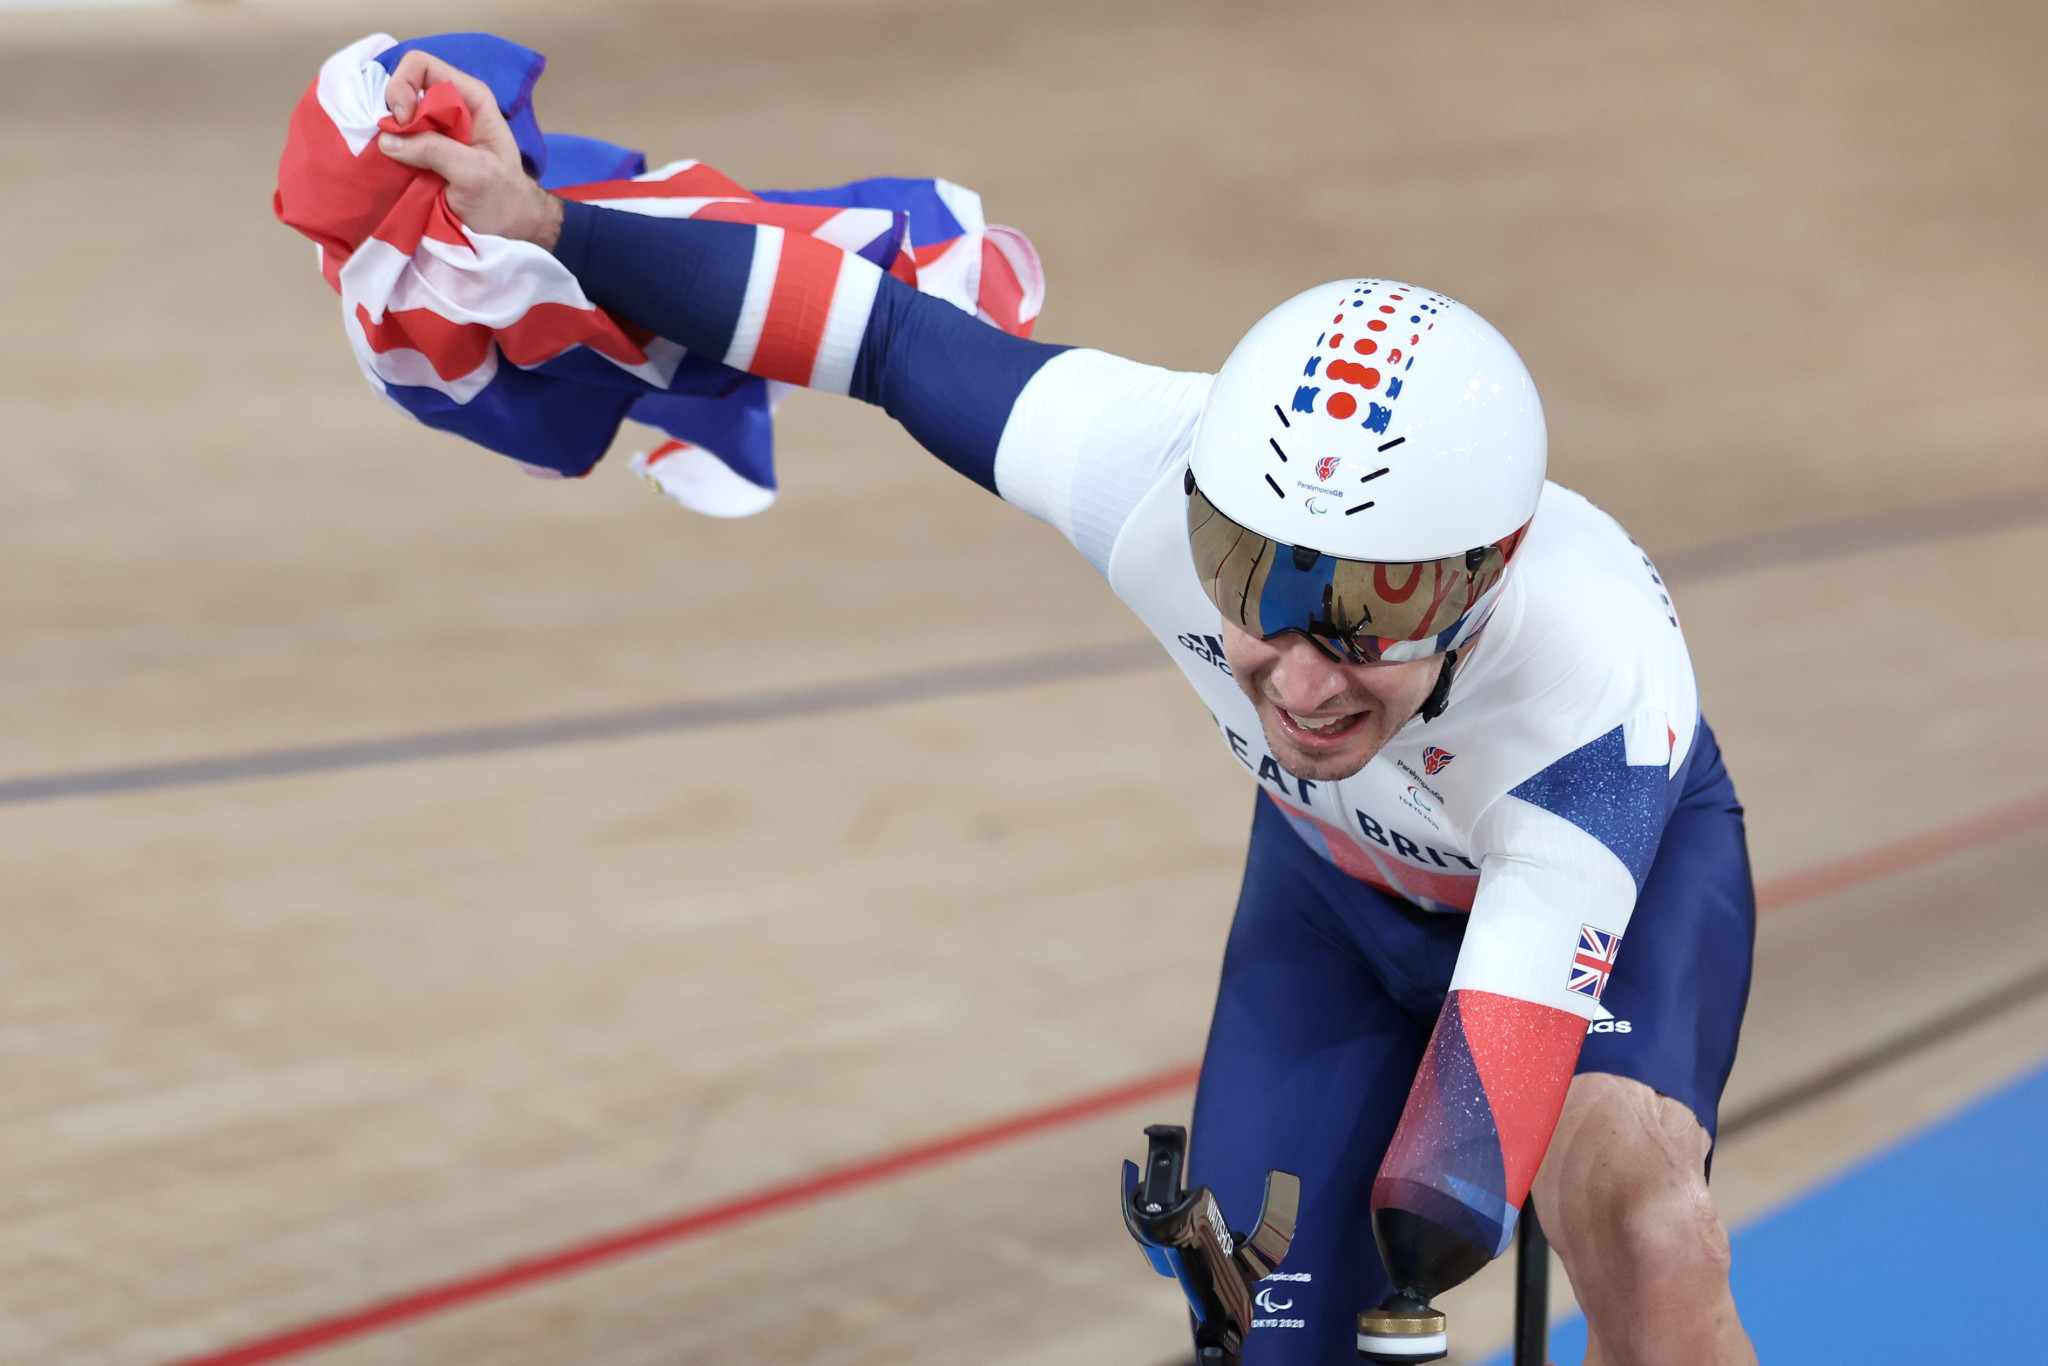 Van Gass marks Paralympic debut with time-trial gold